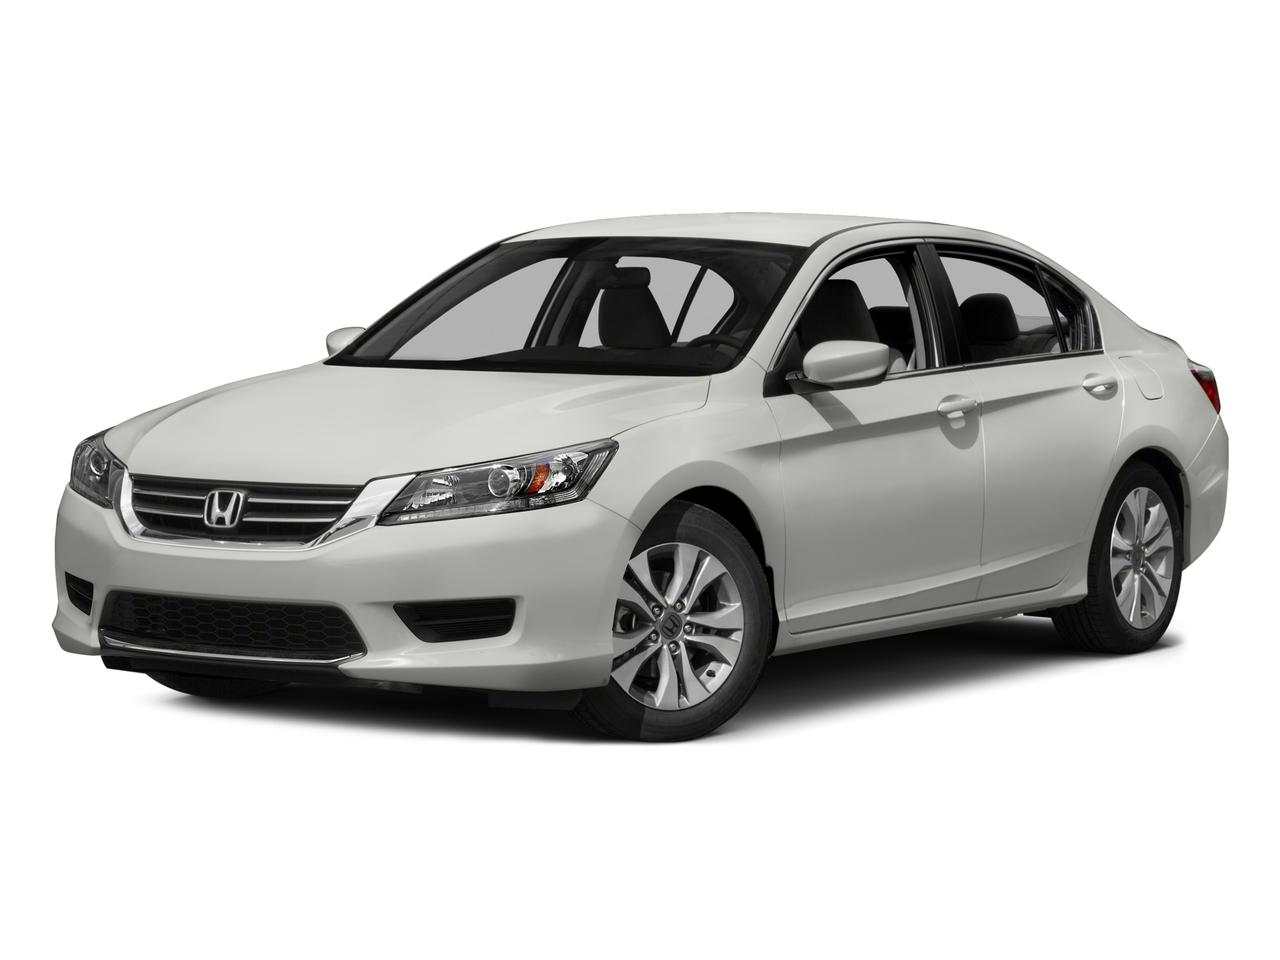 2015 Honda Accord Sedan Vehicle Photo in Manassas, VA 20109